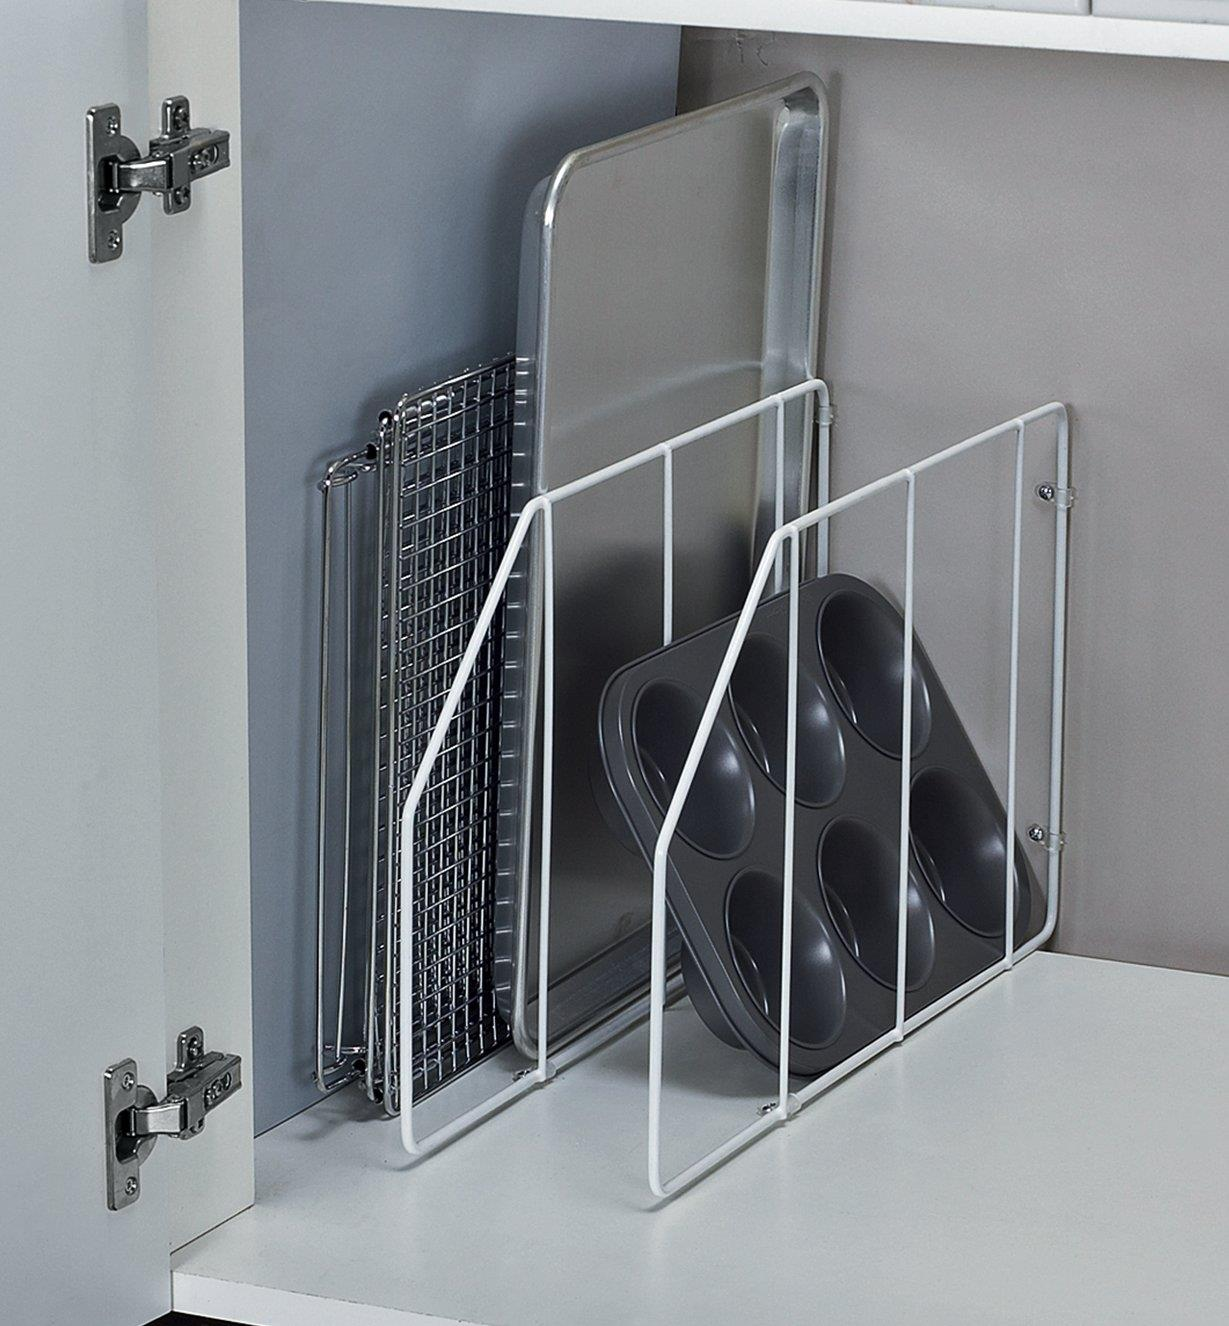 Baking pans separated between cabinet dividers installed in a cabinet